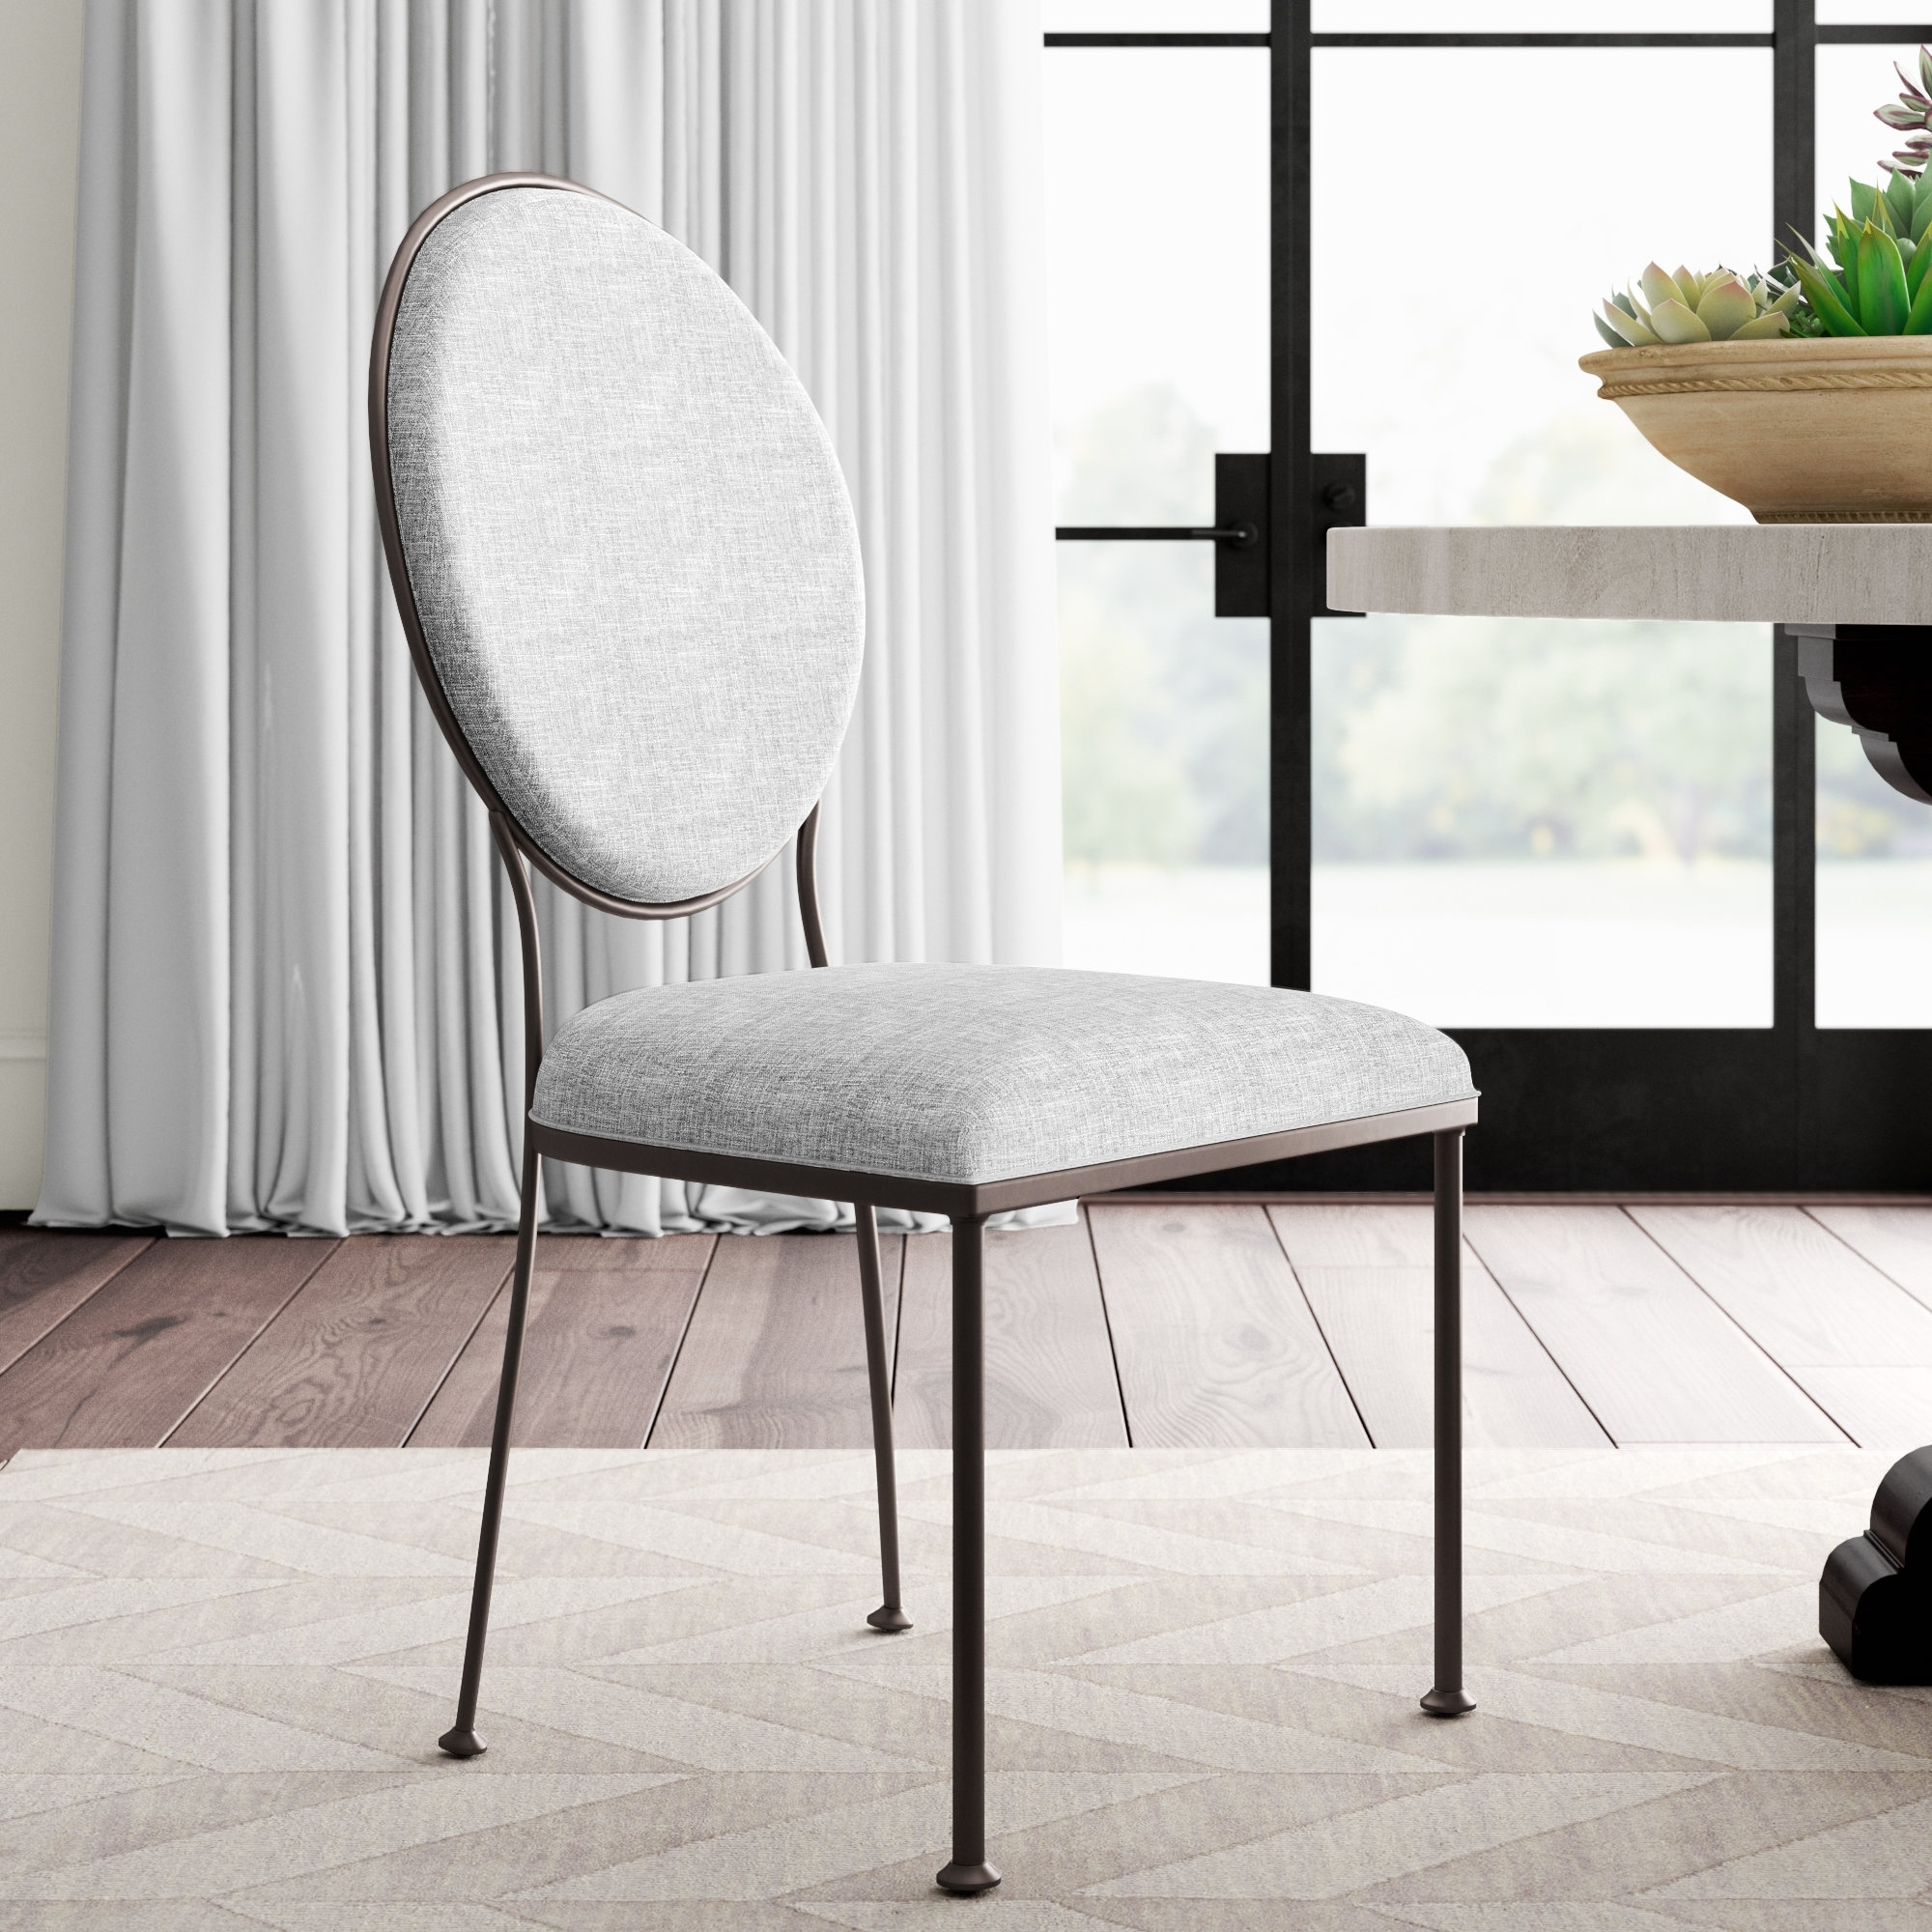 Wayfair Intended For Newest Caira Upholstered Arm Chairs (View 18 of 20)